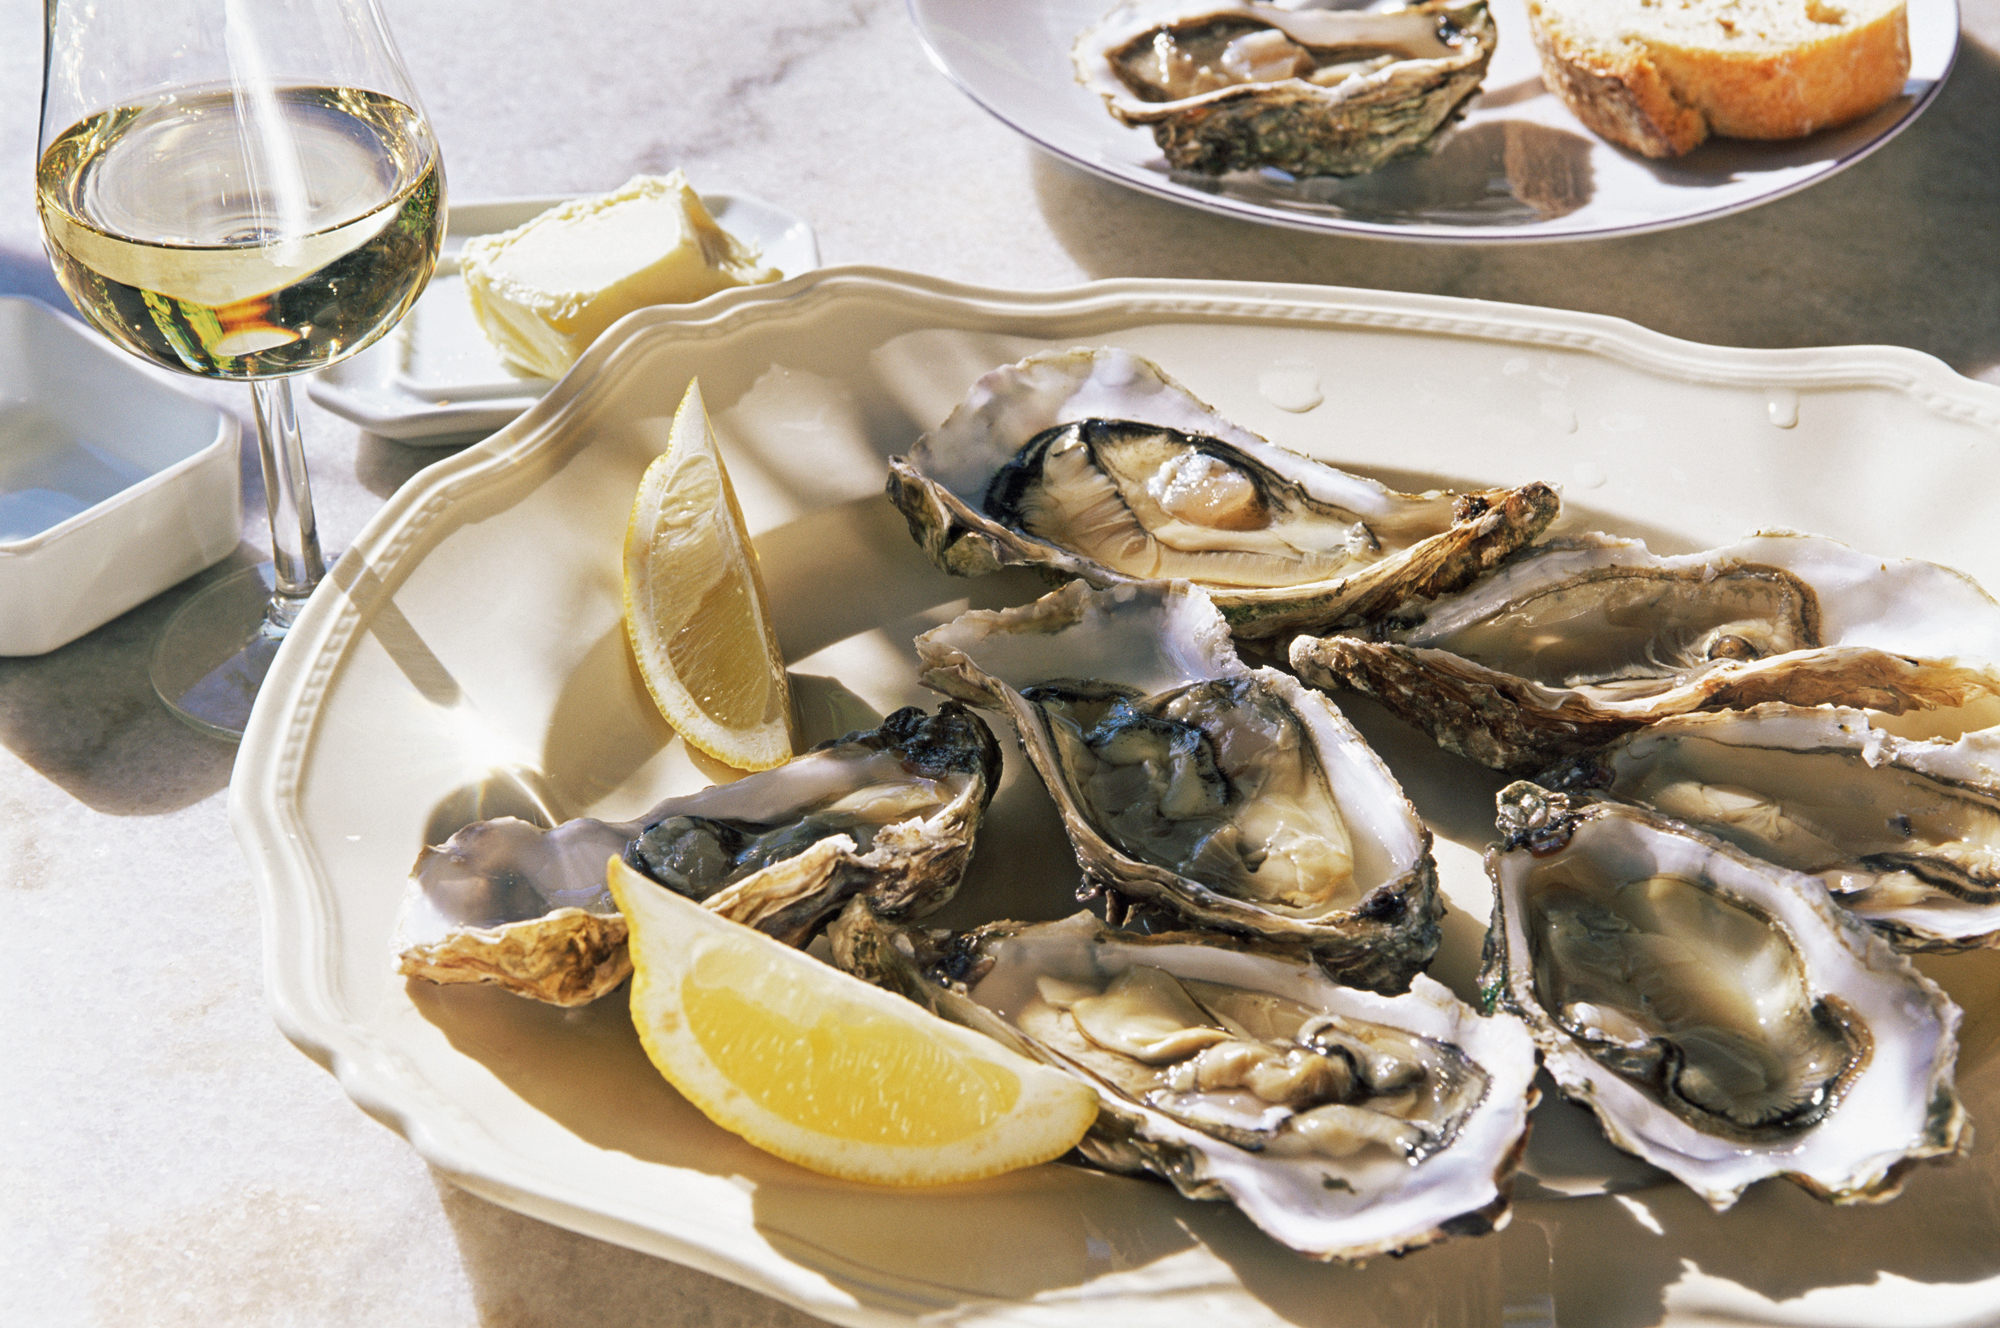 Platter of Raw Oysters with Lemon and a Glass of White Wine